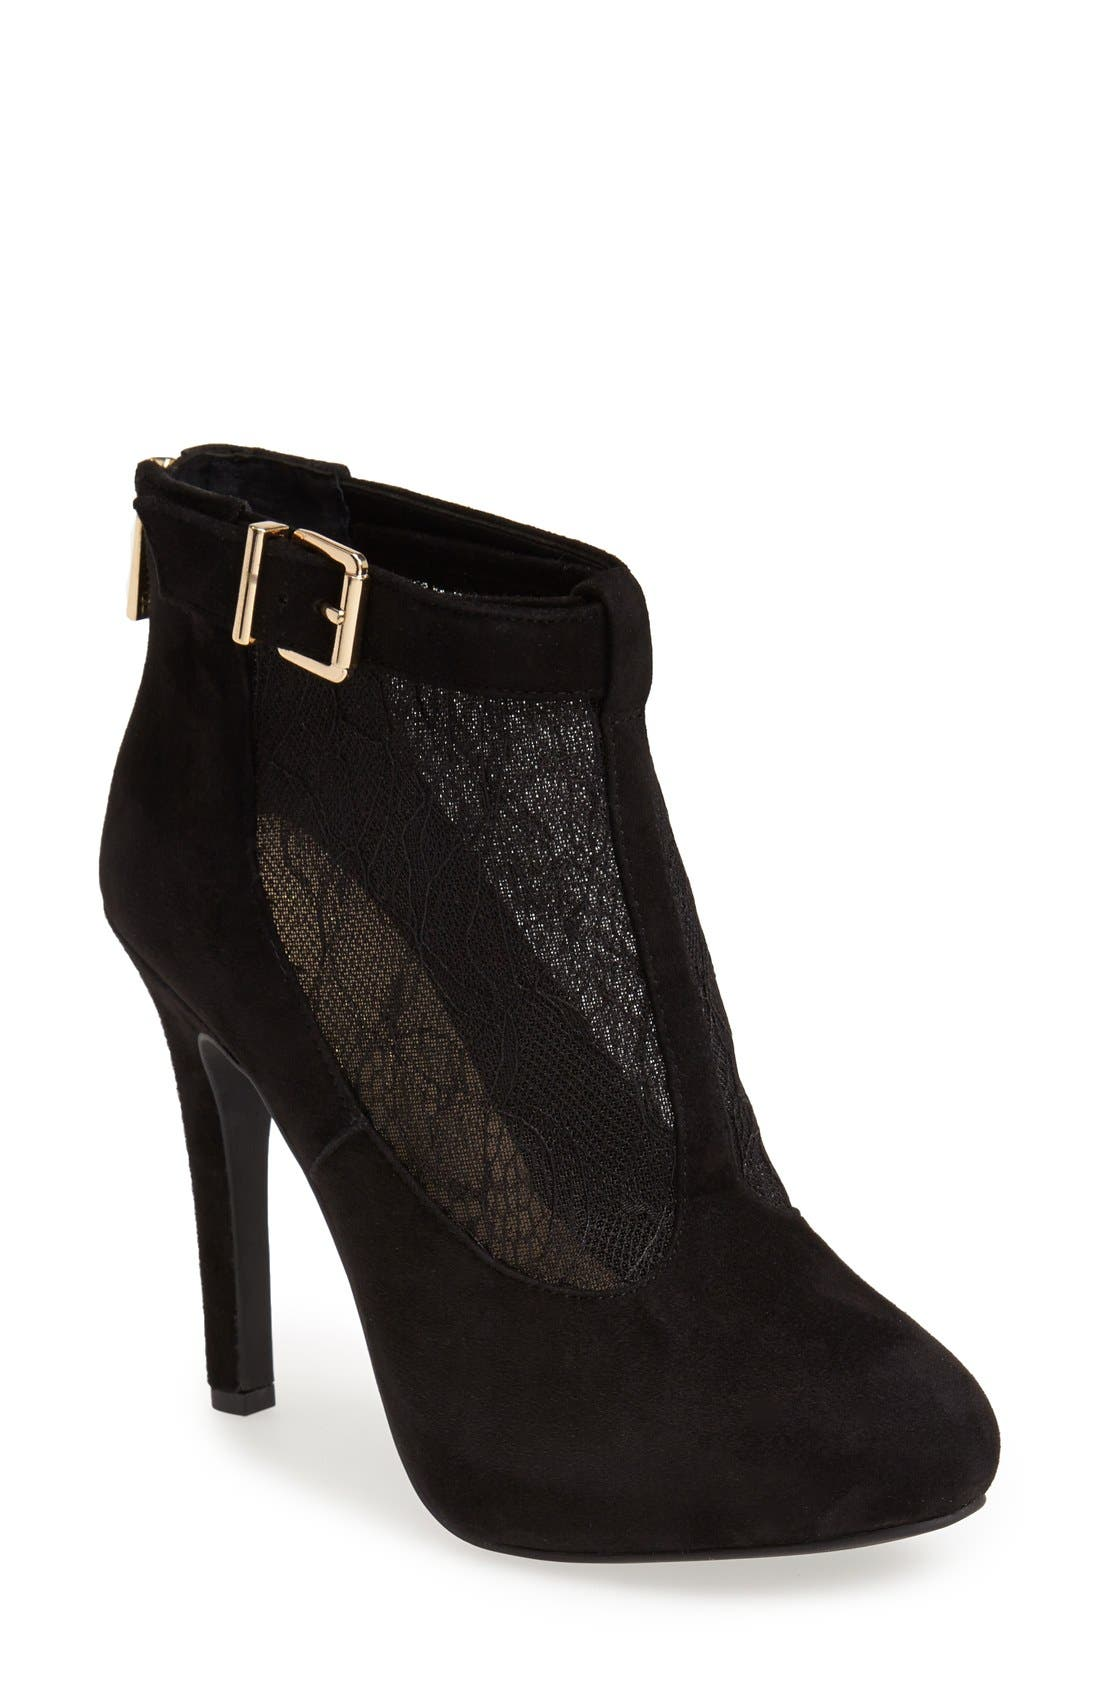 Alternate Image 1 Selected - Jessica Simpson 'Shauna' Lace & Suede Bootie (Women)